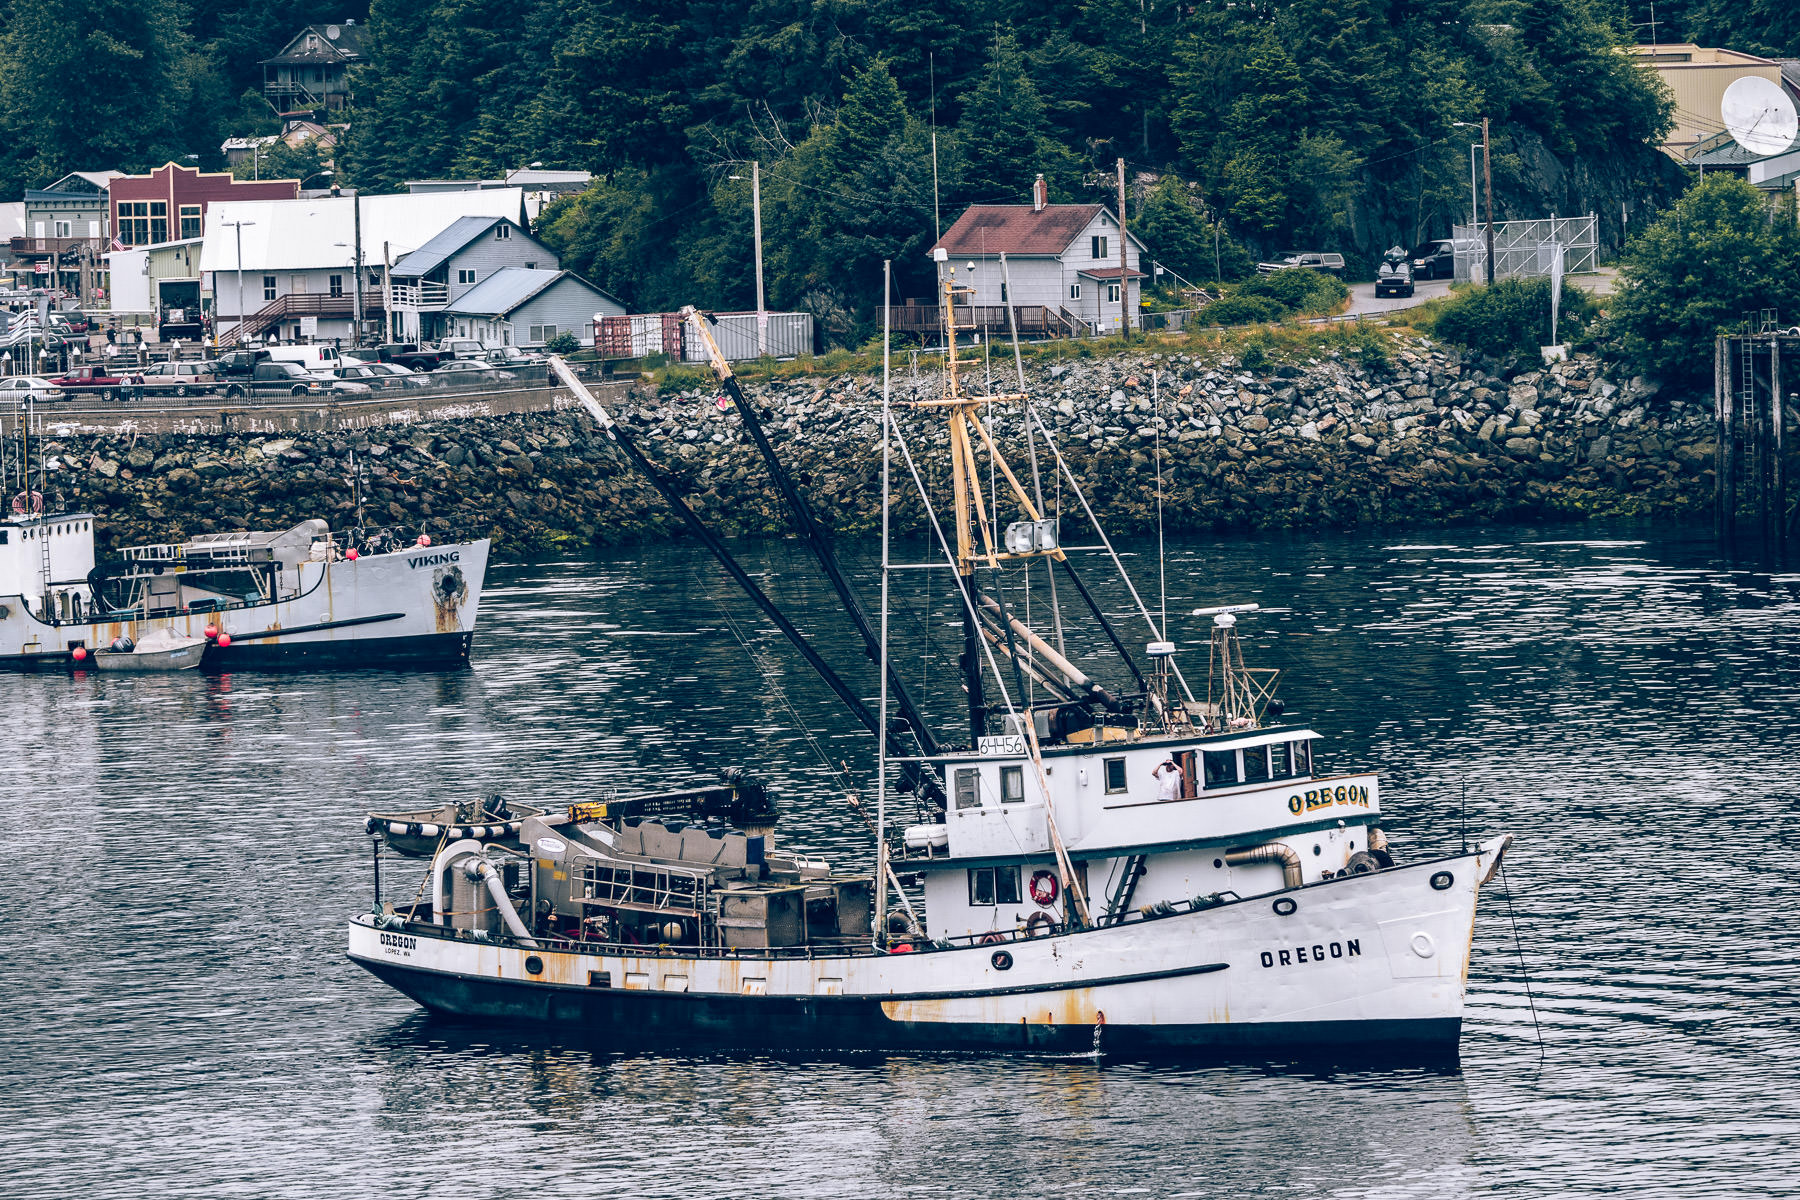 The fishing vesselOregon, spotted in the Port of Ketchikan, Alaska.